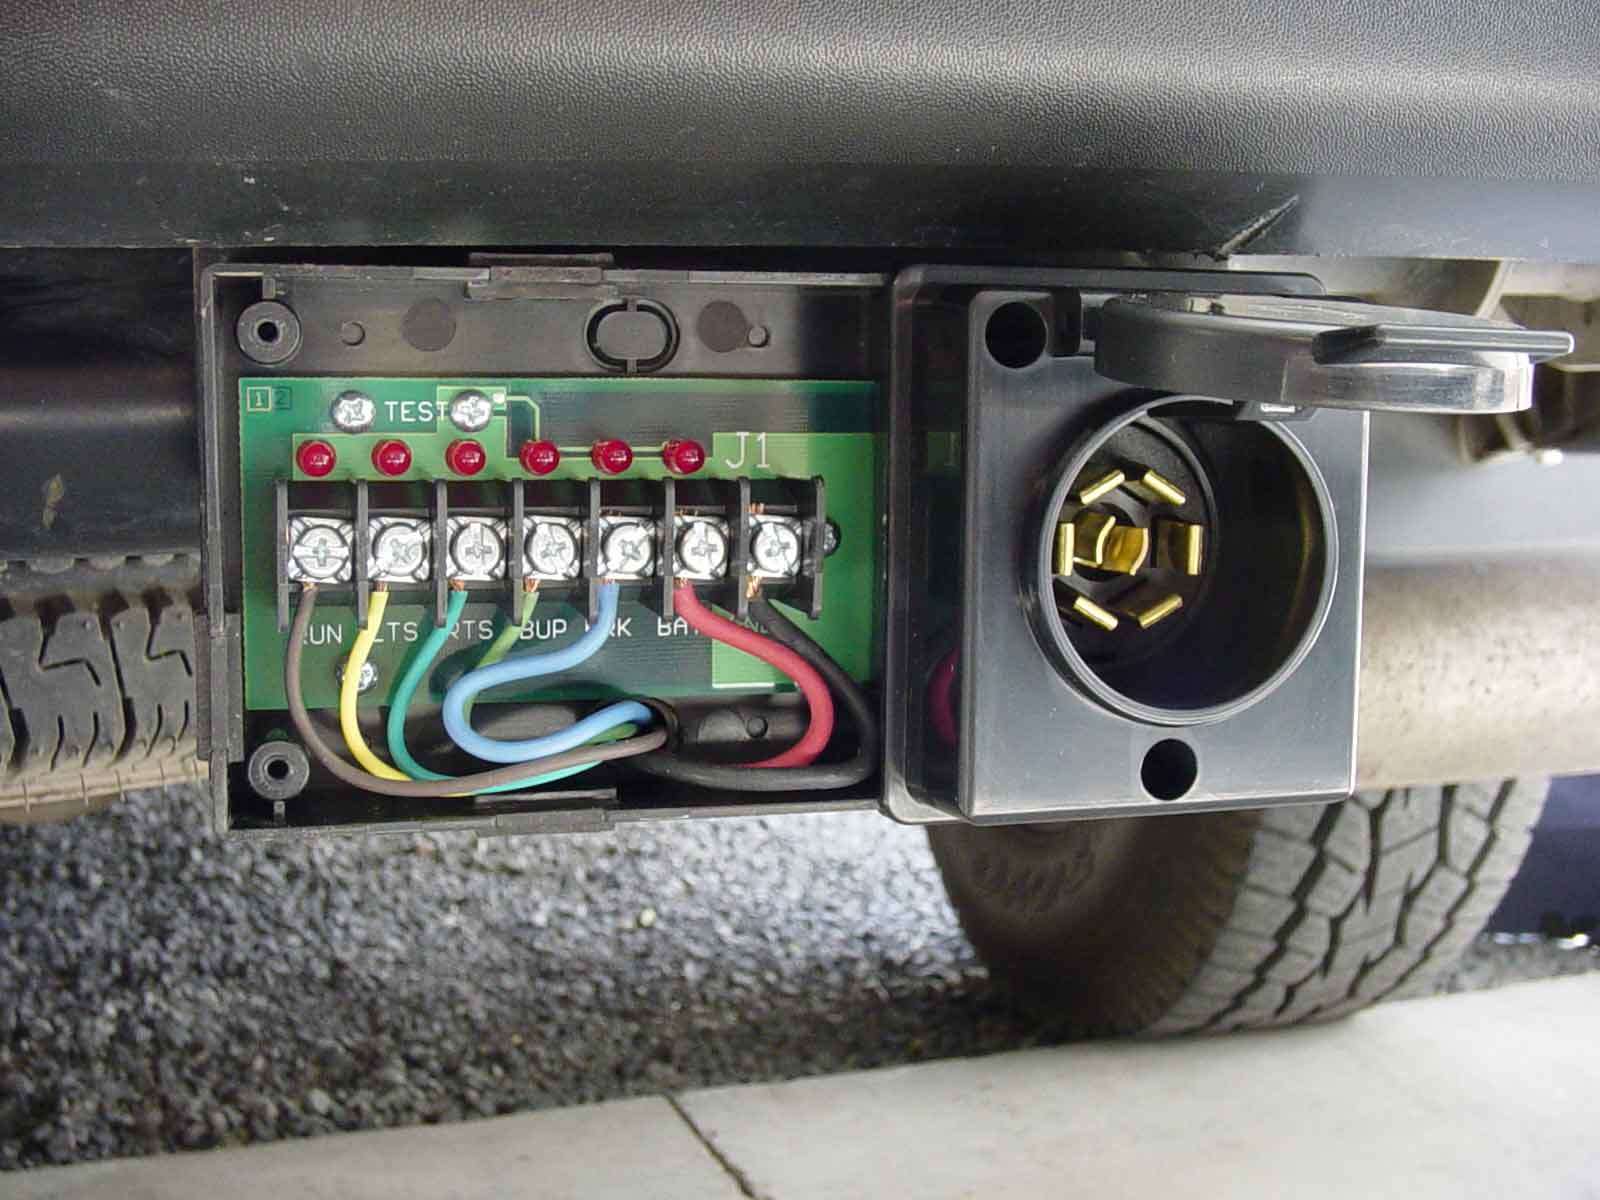 hight resolution of mounted pro plug trailer connector with the cover removed shows wiring of this surface mountable